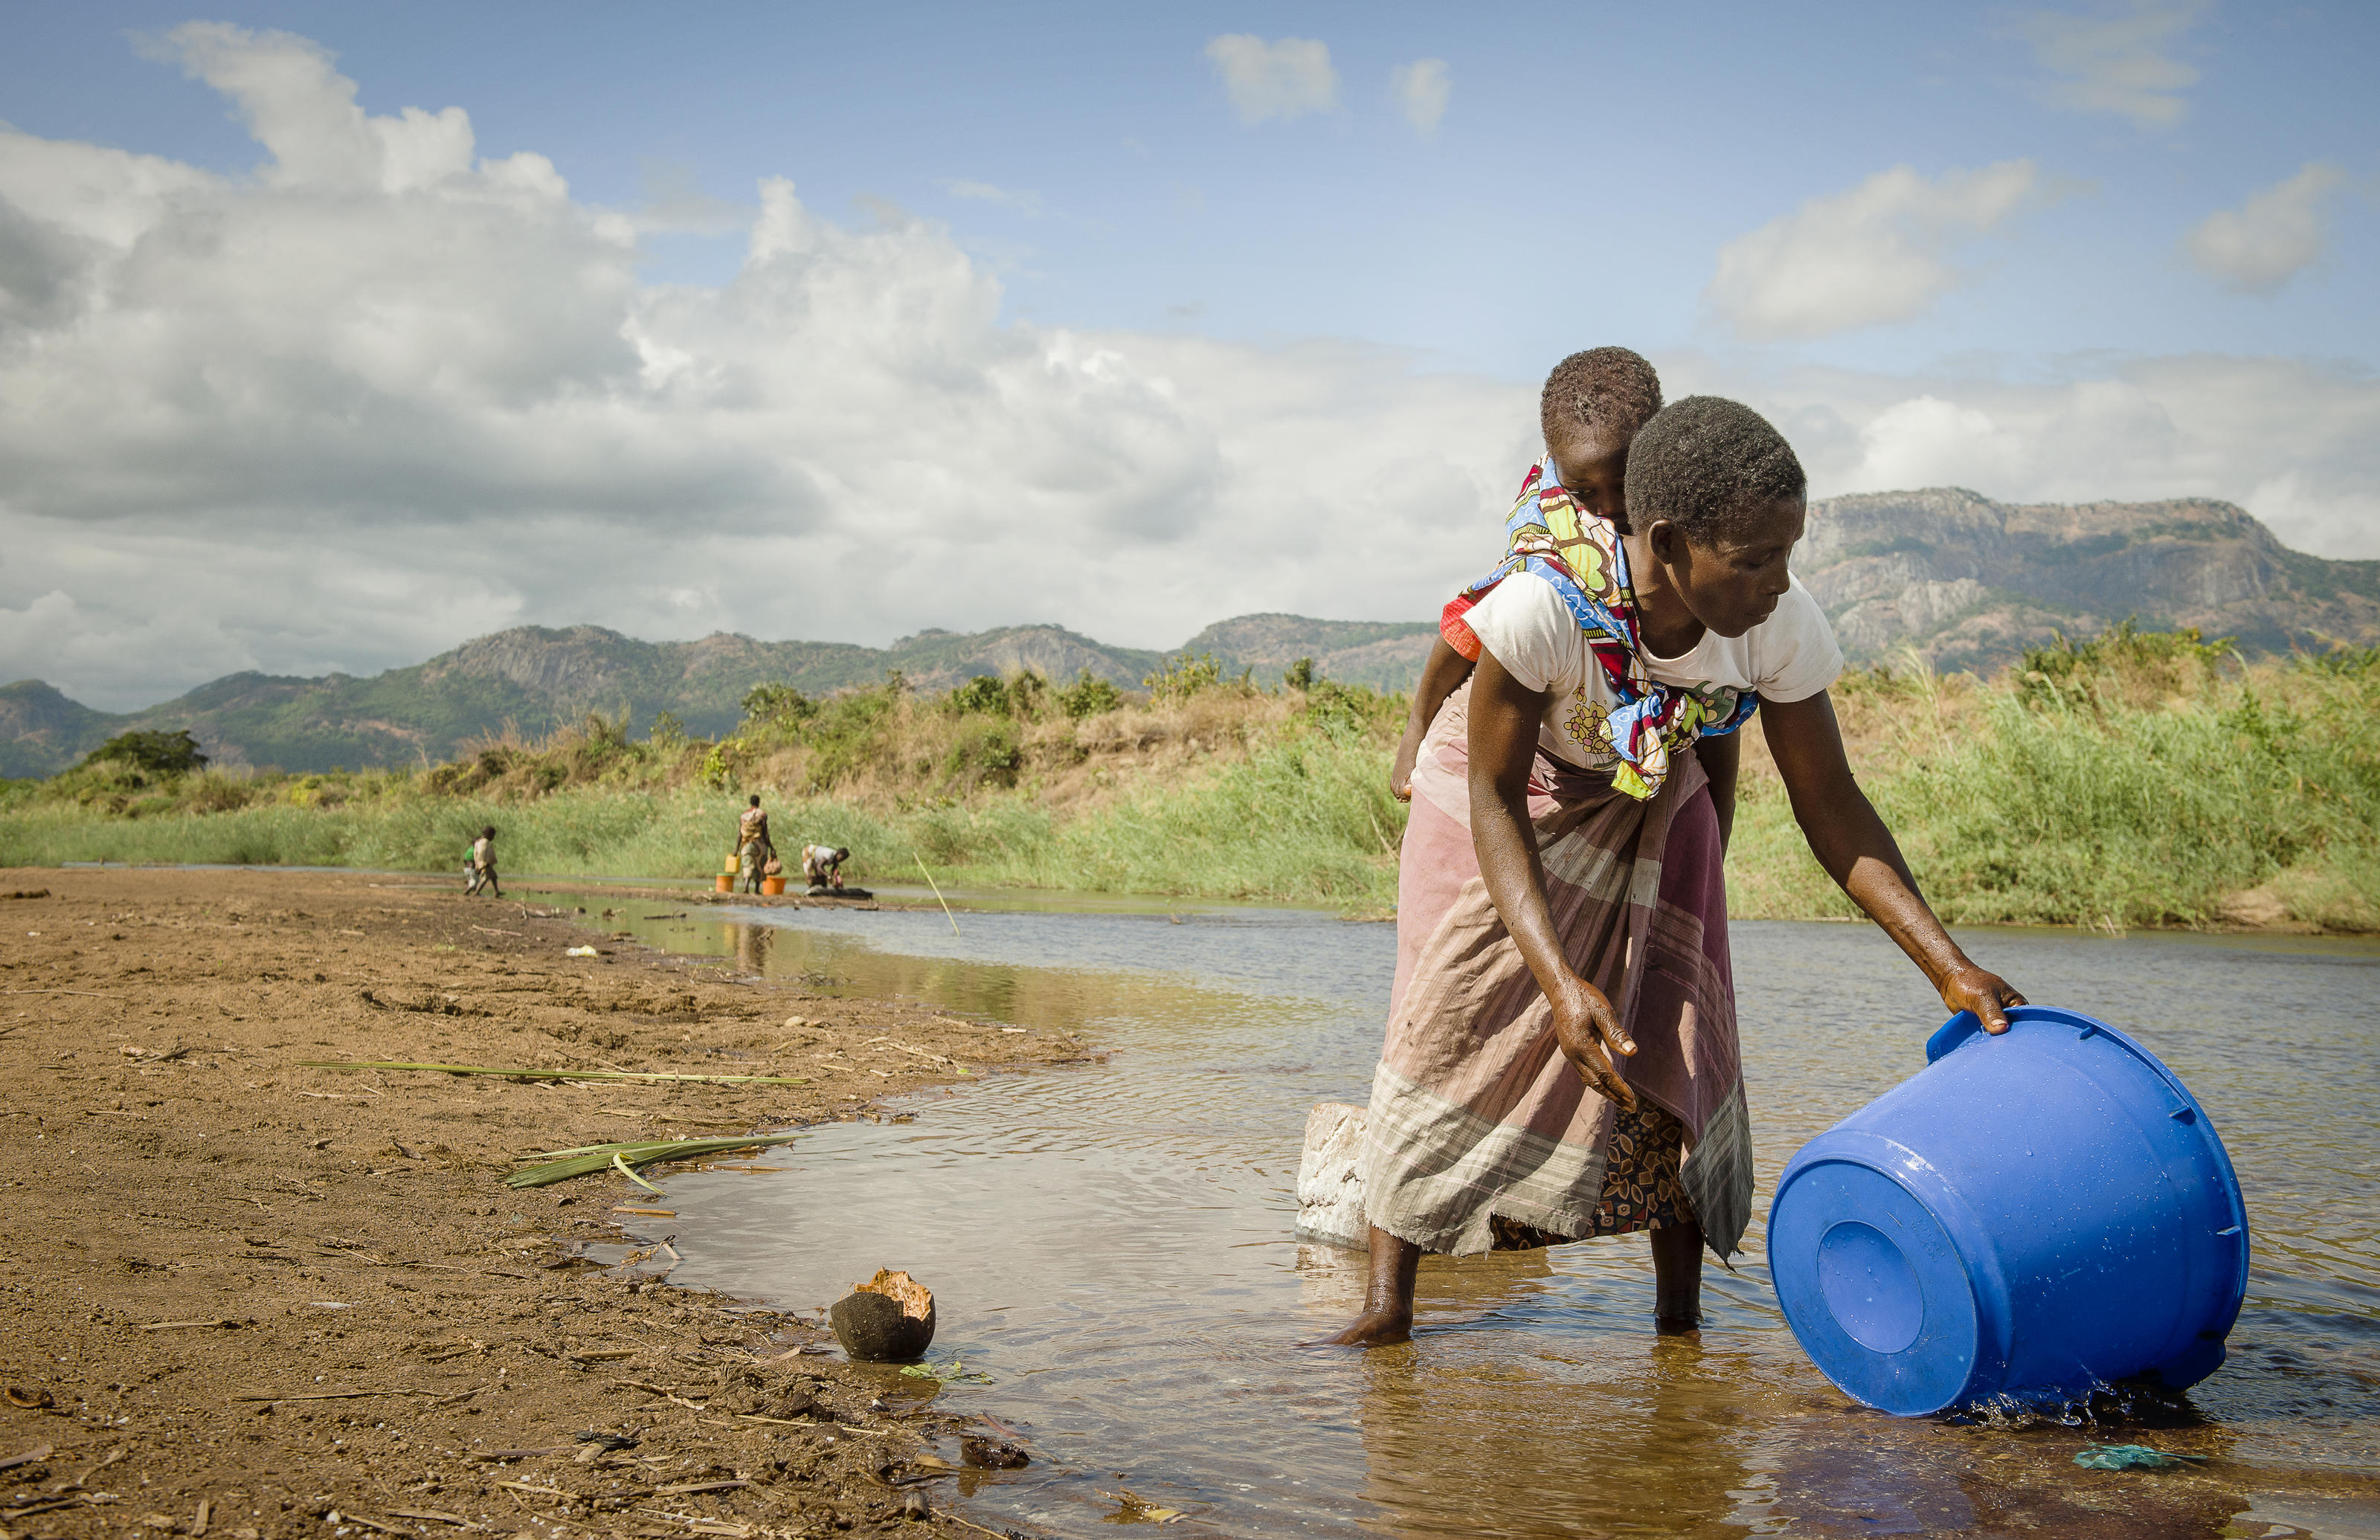 Helene Jemussene carries her baby Agostinho, 3, on her back, as she gathers water from the river near M'Mele Village, Cuamba District, Niassa Province, Mozambique. May 2017.